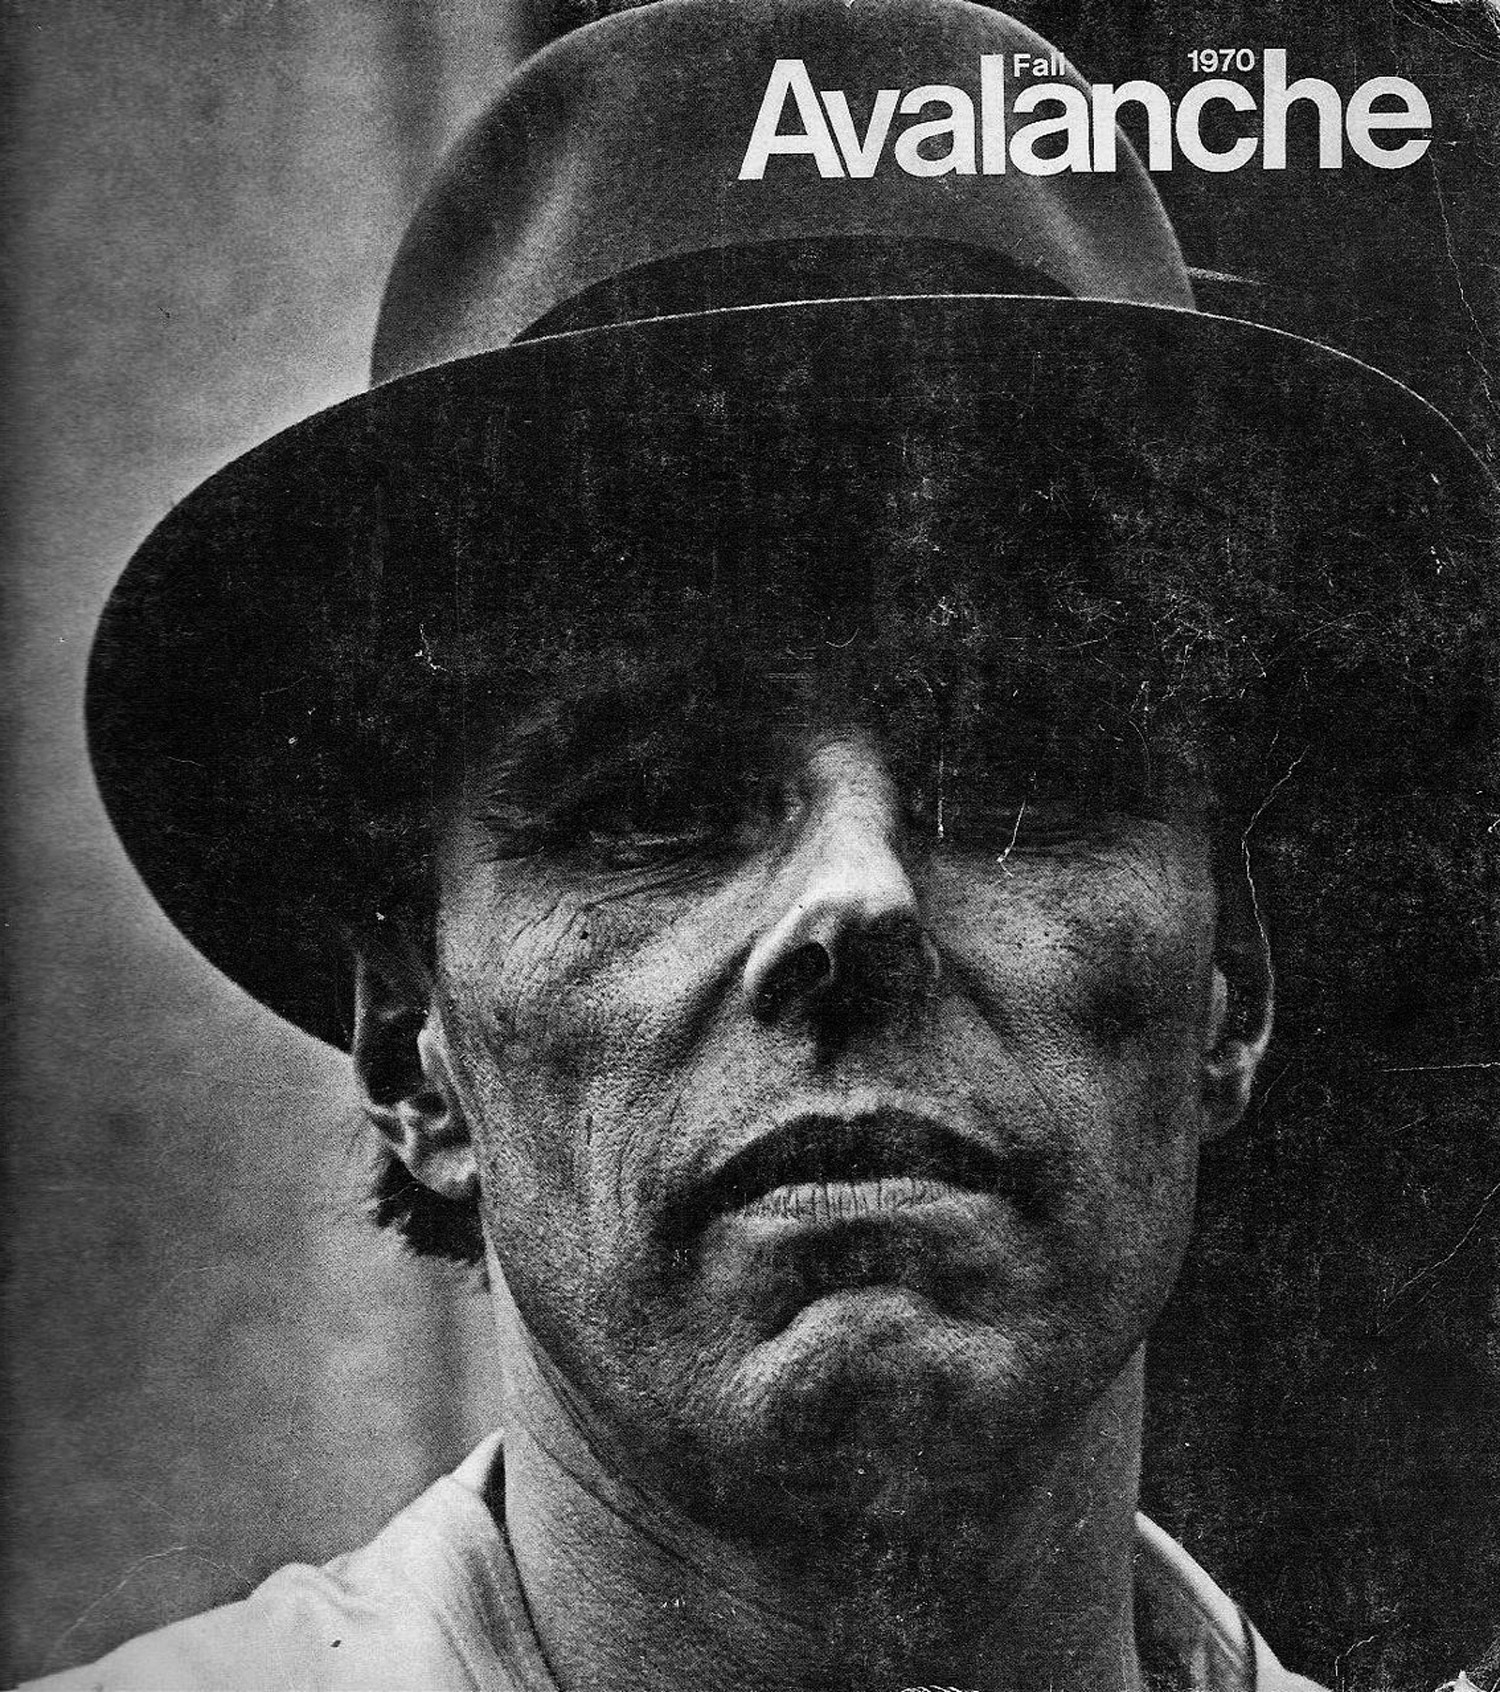 Avalanche - First issue featuring Joseph Beuys, Autumn 1970